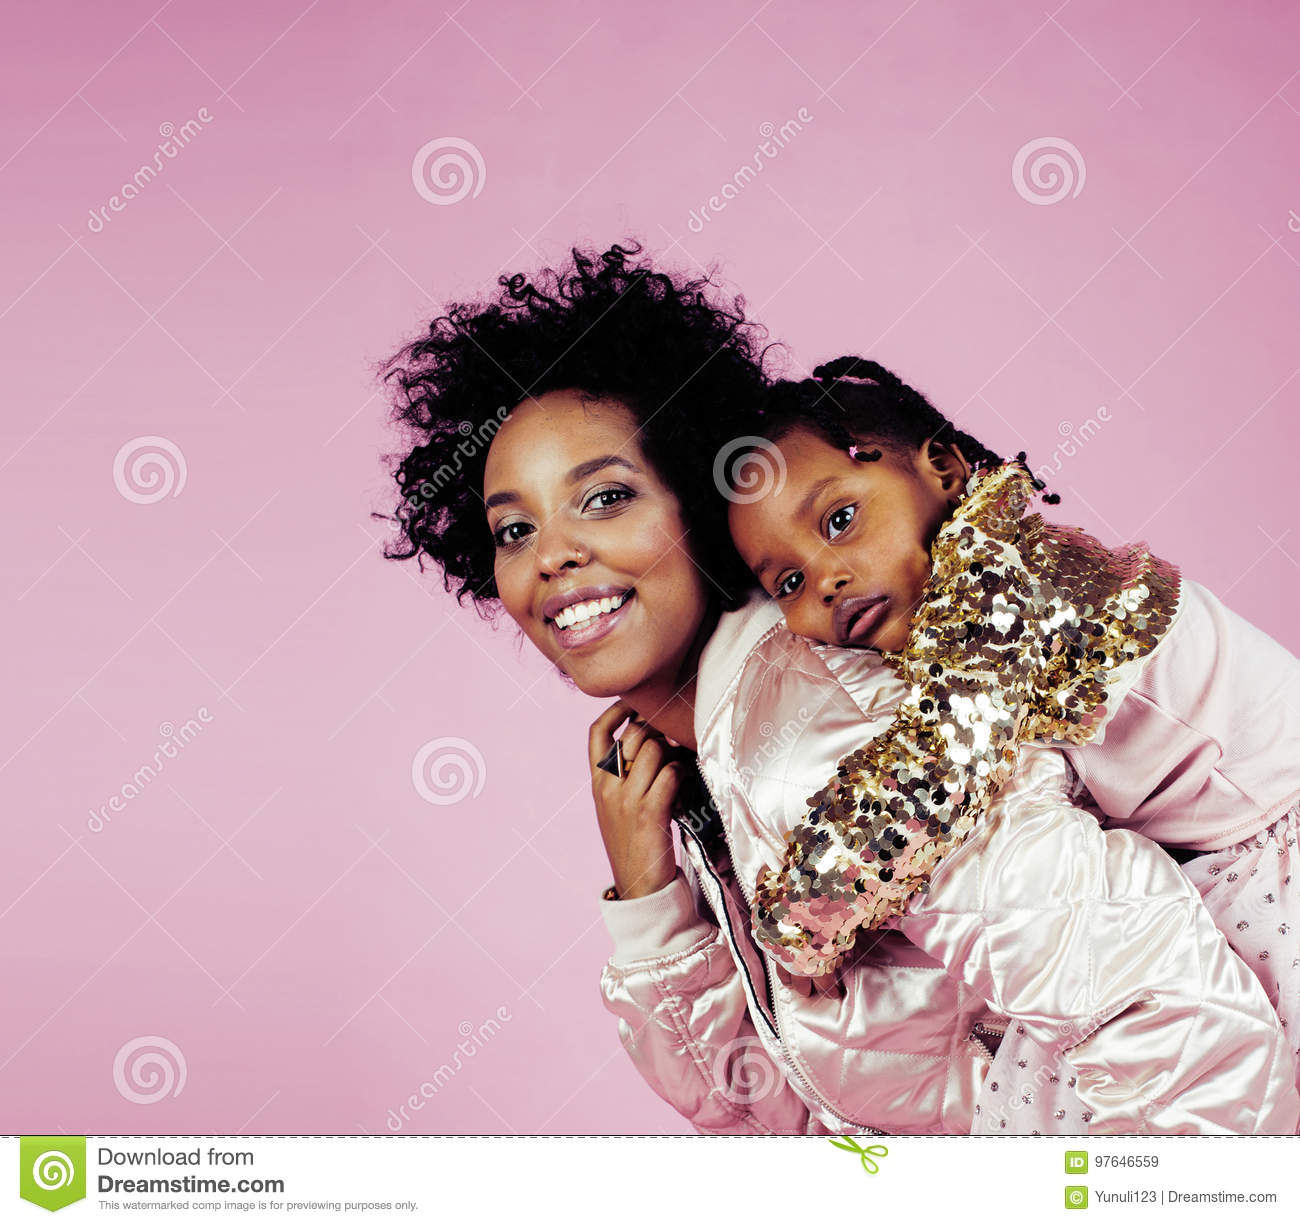 Young pretty african-american mother with little cute daughter hugging, happy smiling on pink background, lifestyle